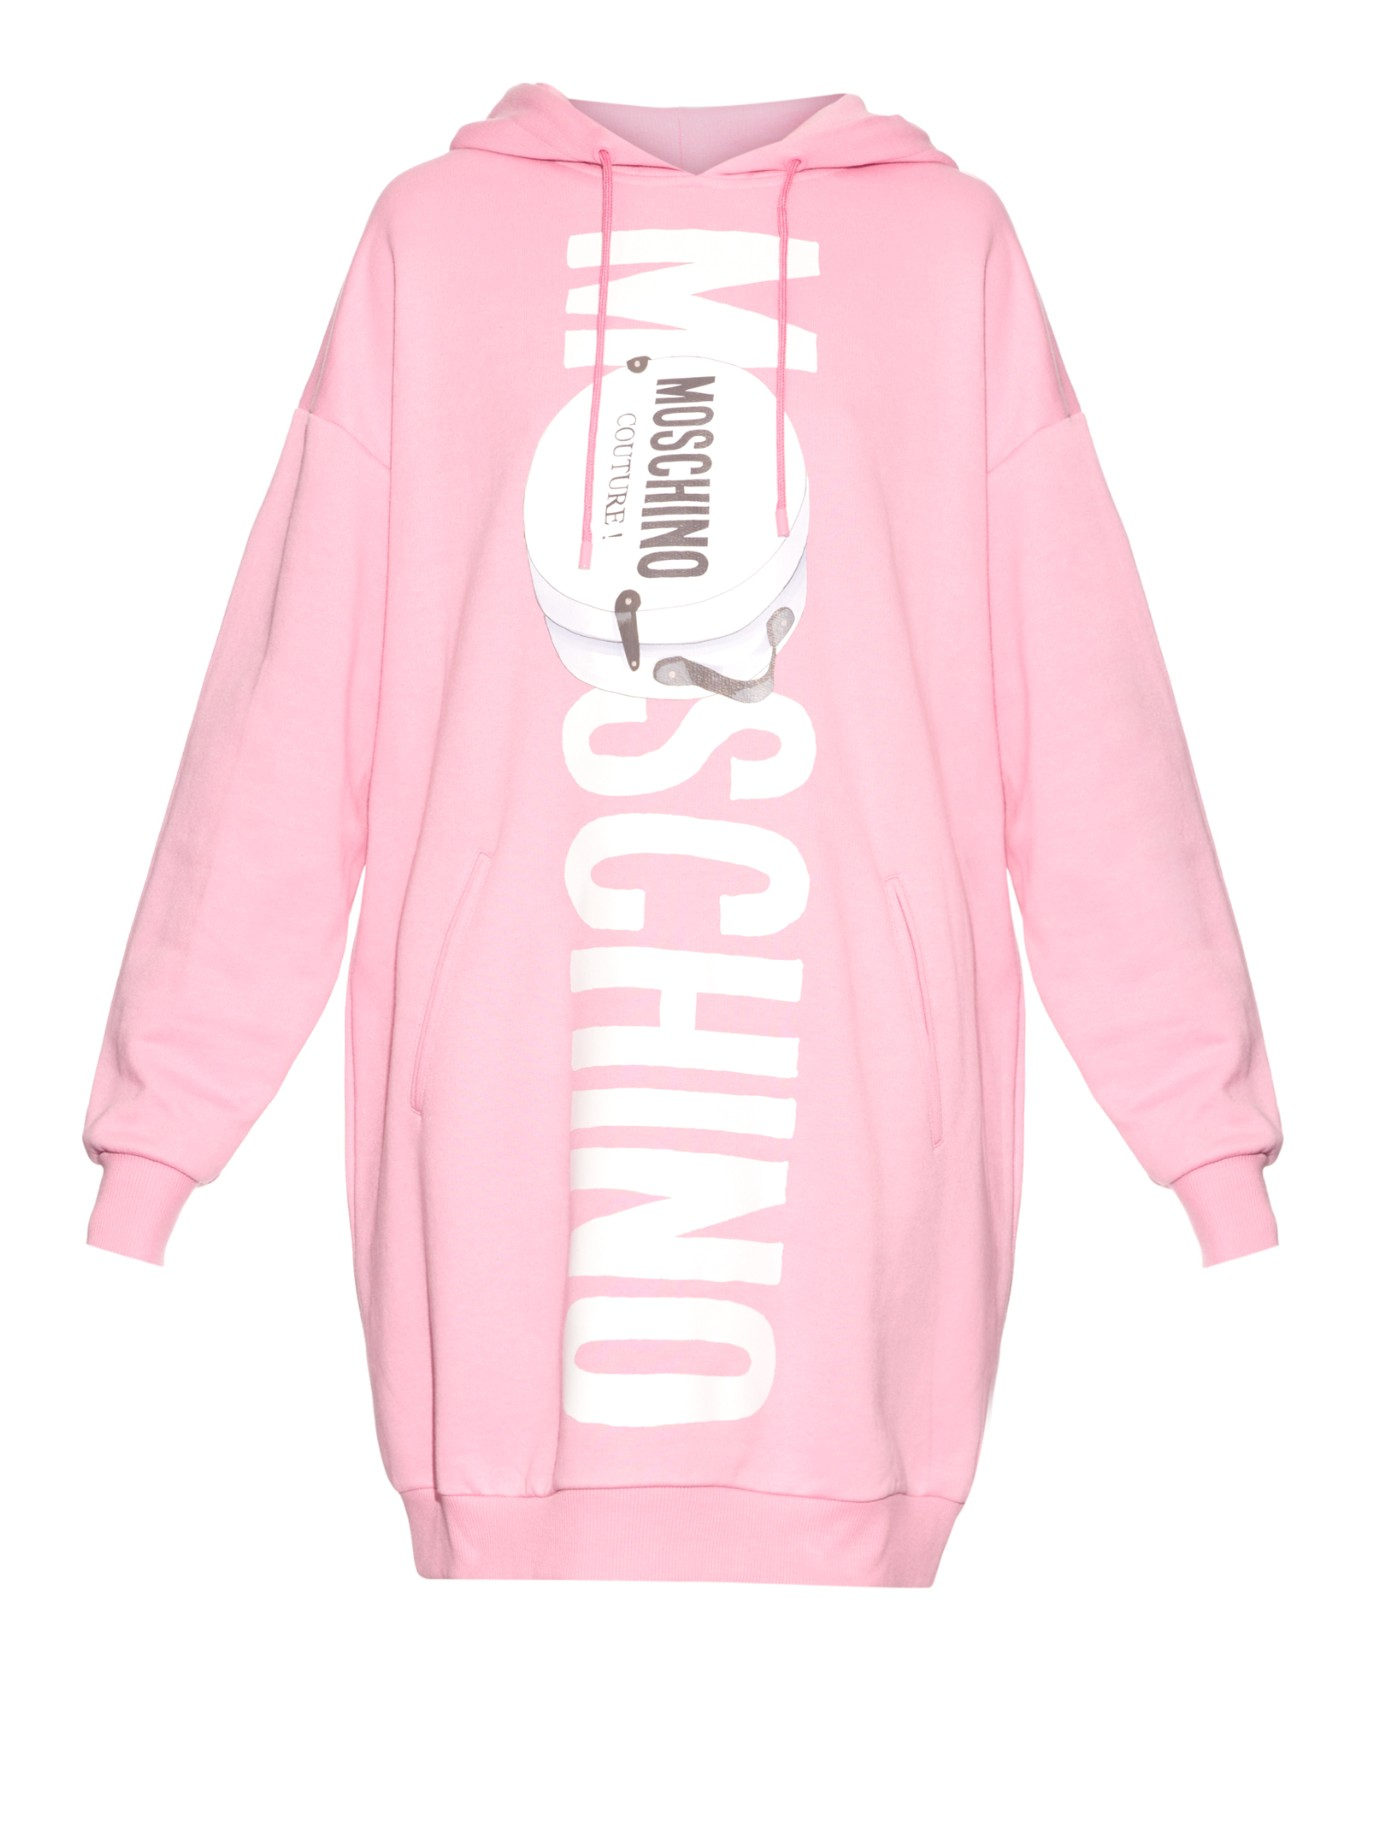 Moschino Oversized Hooded Logo Sweater Dress in Pink | Lyst